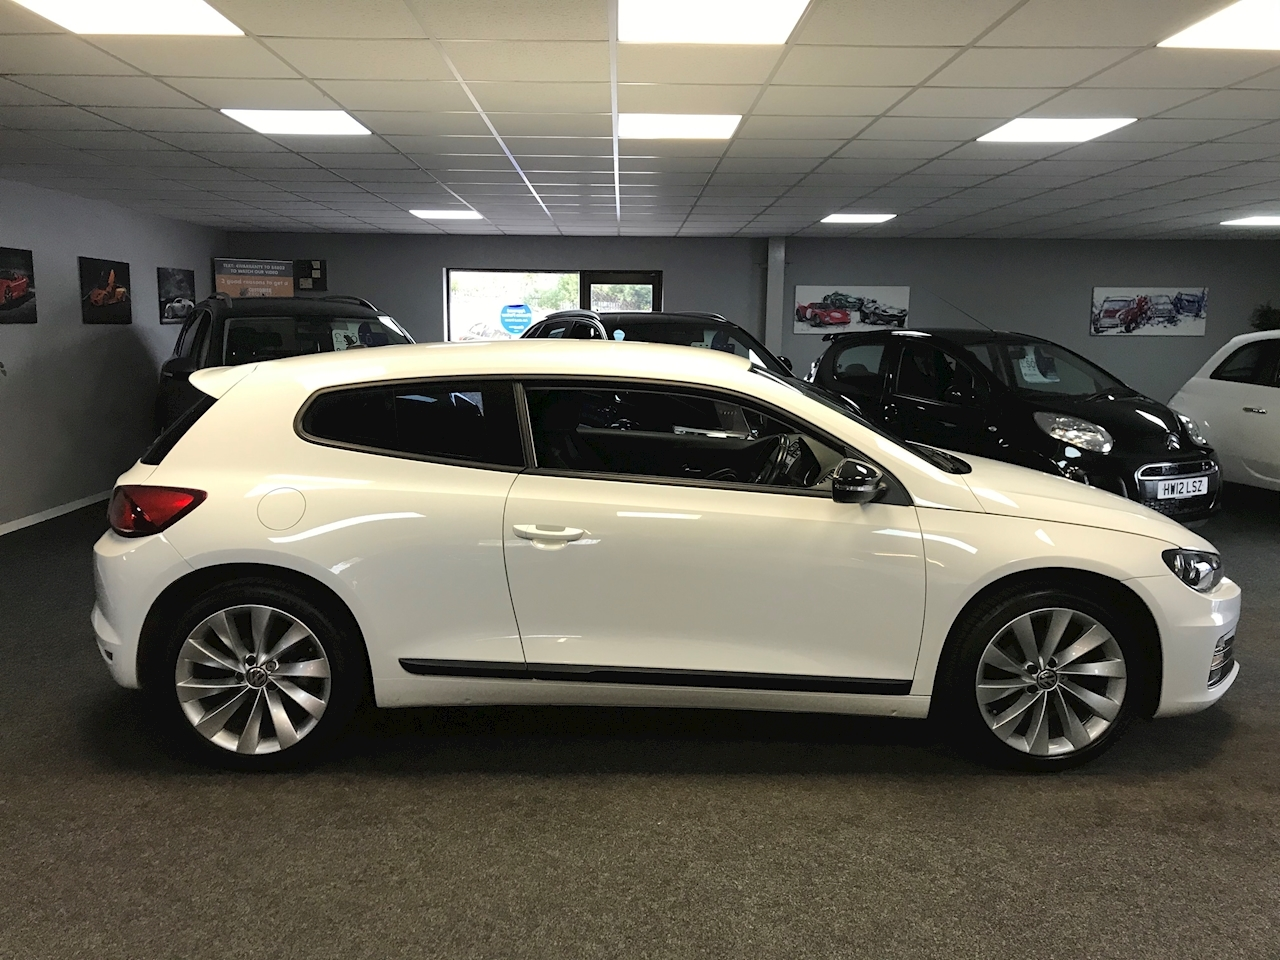 Scirocco Tsi Bluemotion Technology Coupe 1.4 Manual Petrol